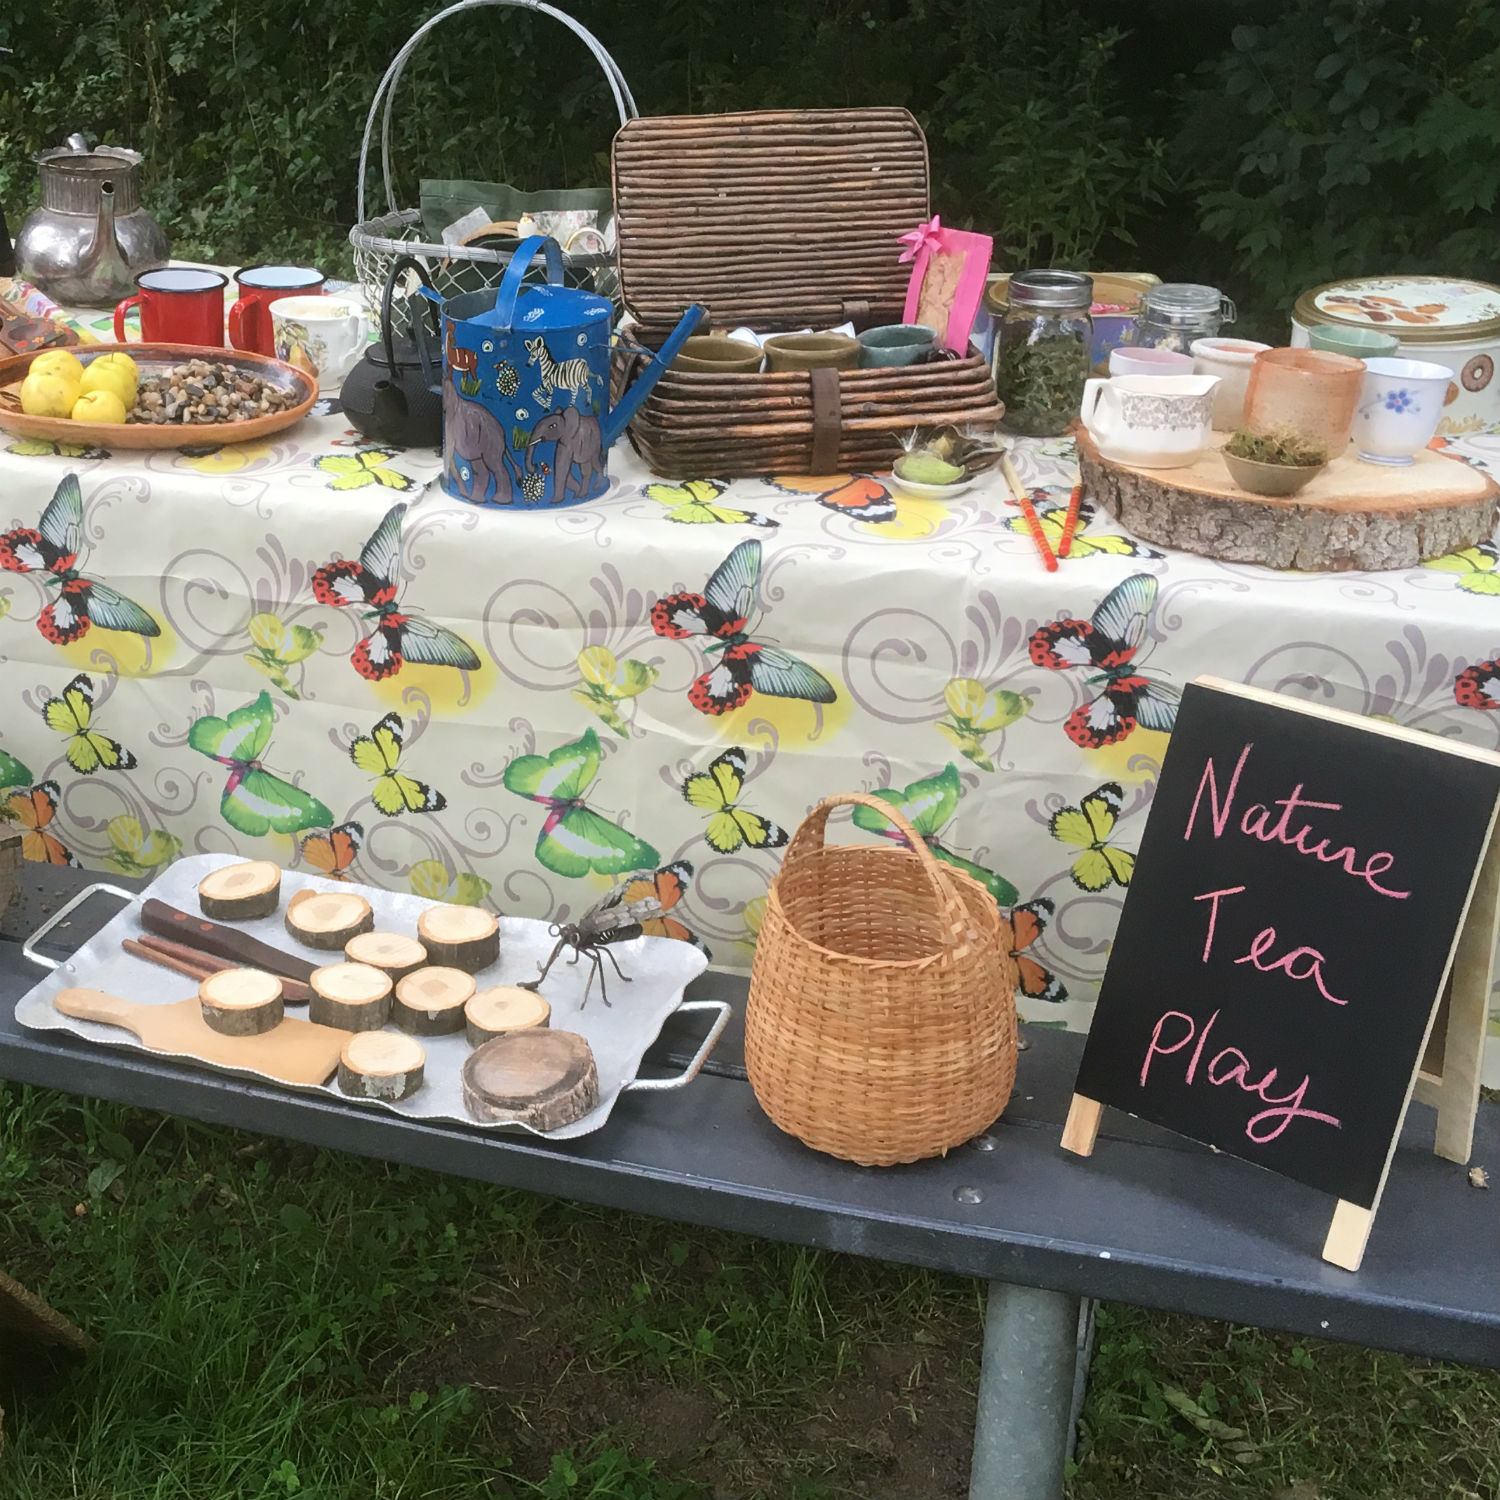 All set for our tea party under the canopy of High Park.